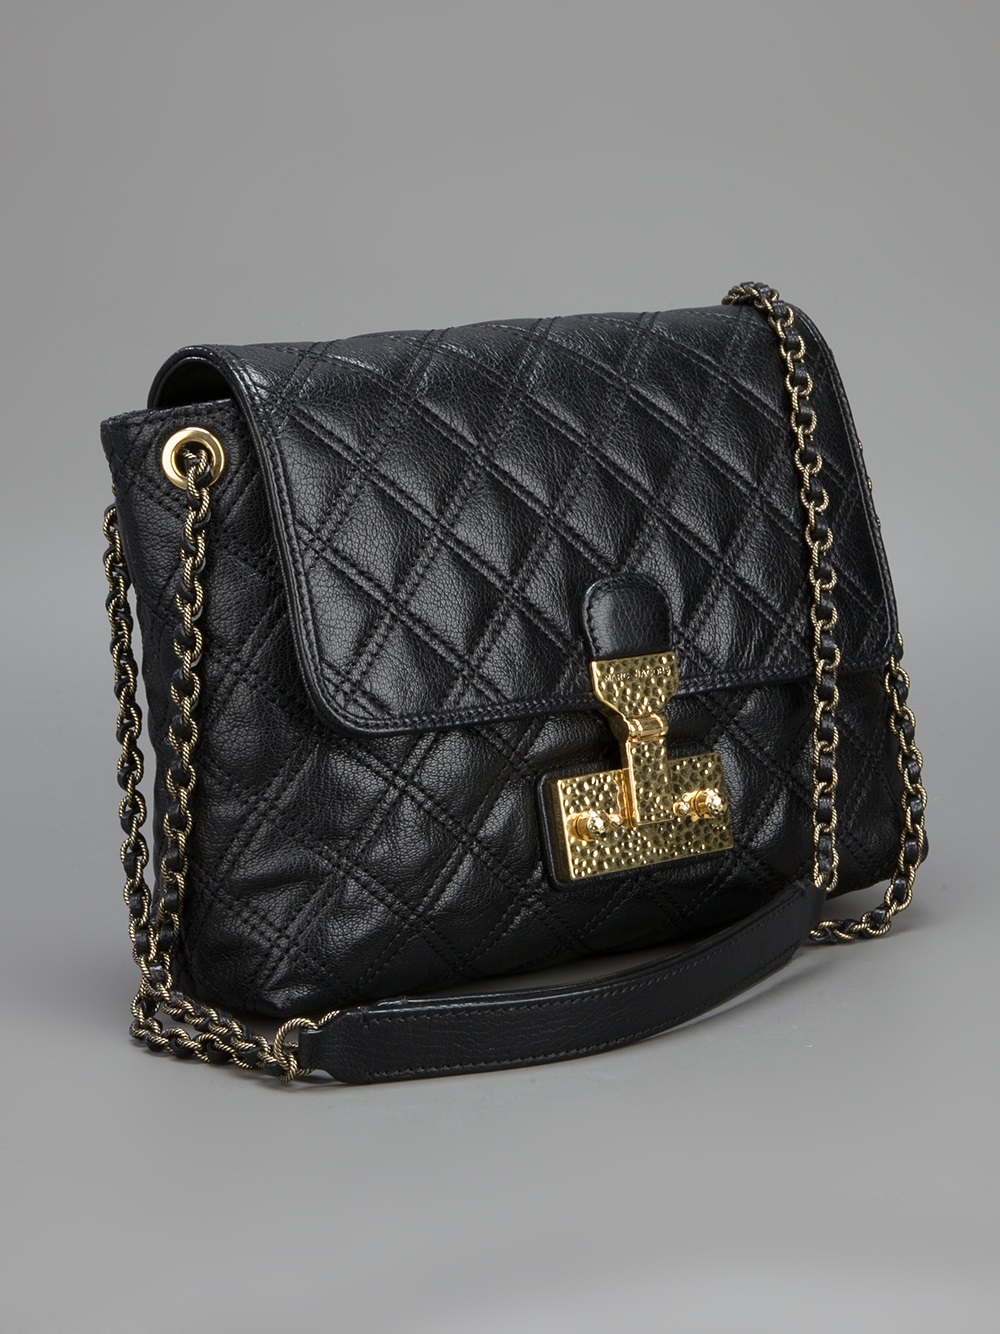 0a9e370439 Marc Jacobs Quilted Bag Black - Bag Photos and Wallpaper HD